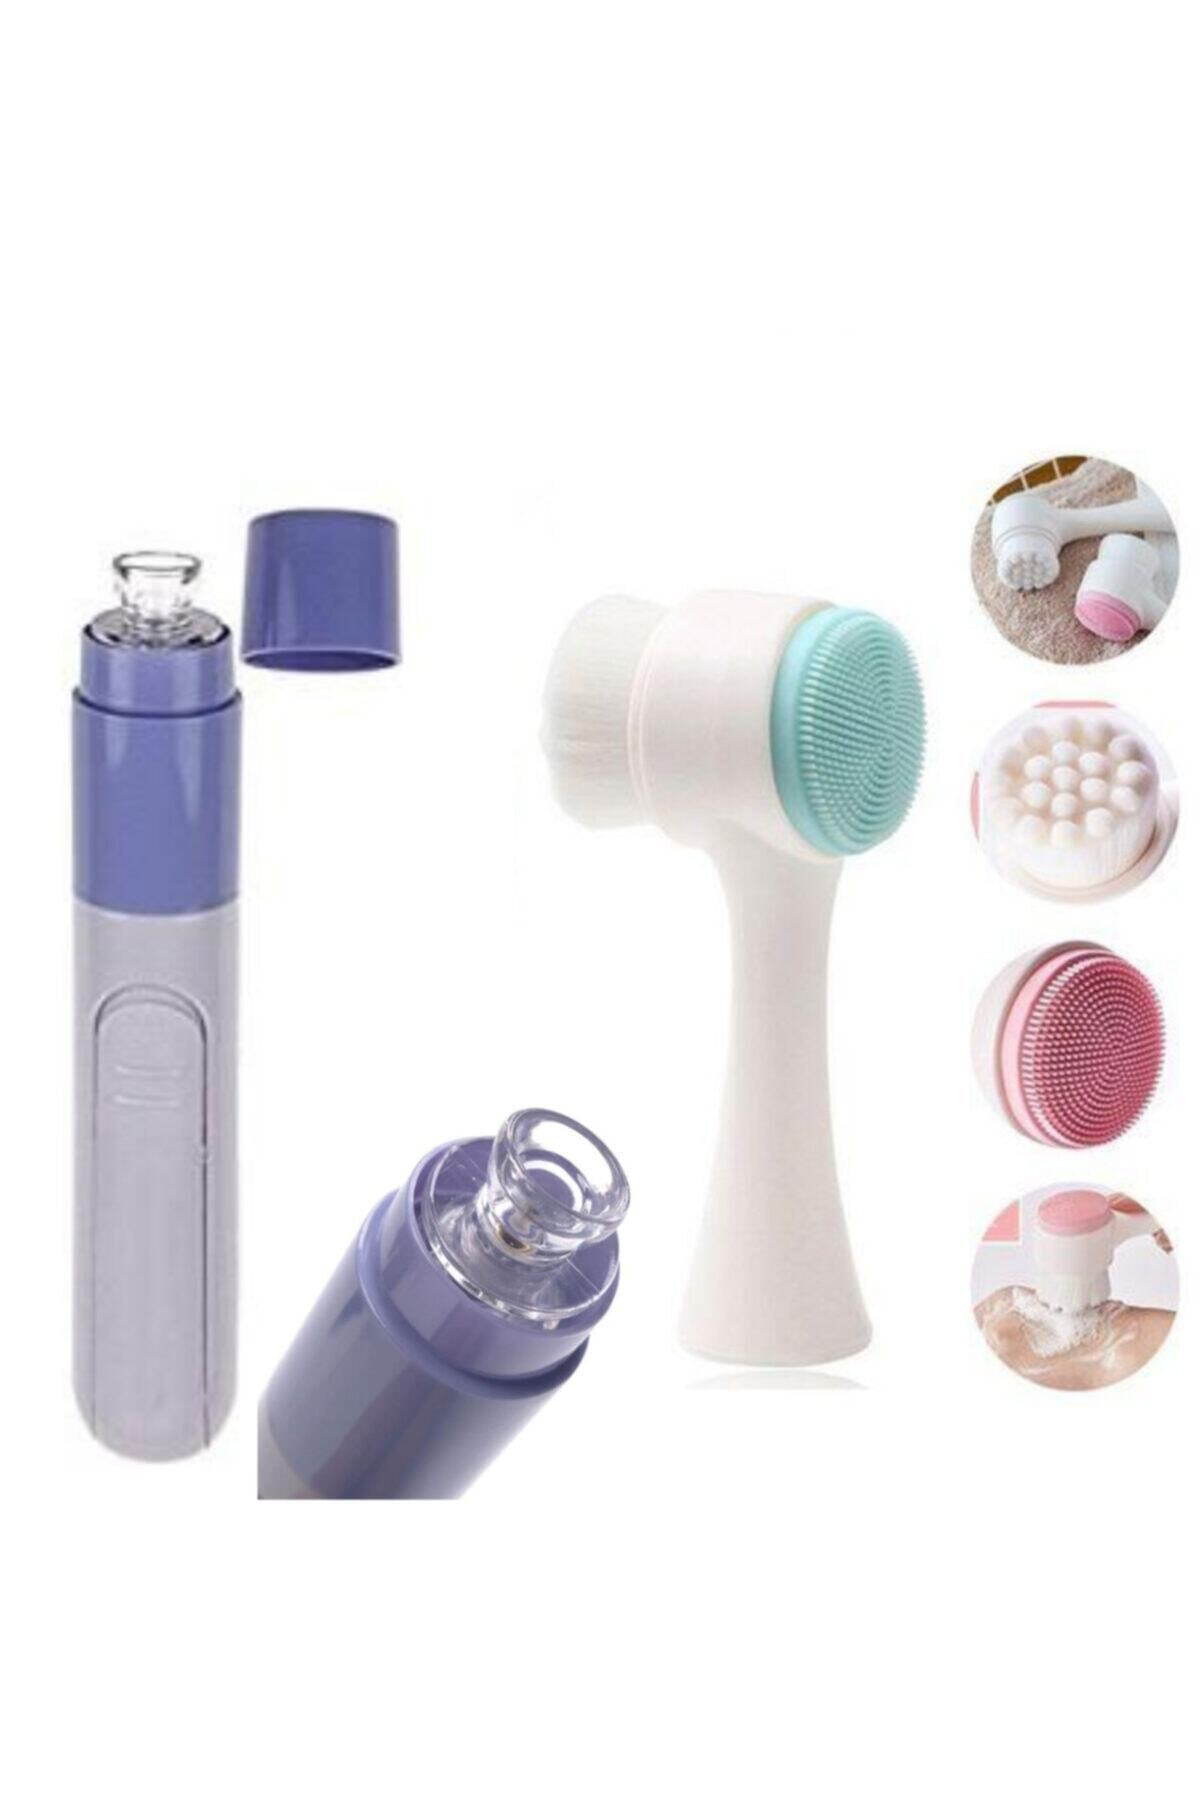 QNİAY Set of 2 Pore Cleaner Vacuum Blackhead Removal + Double Sided 3d Facial Cleansing Brush